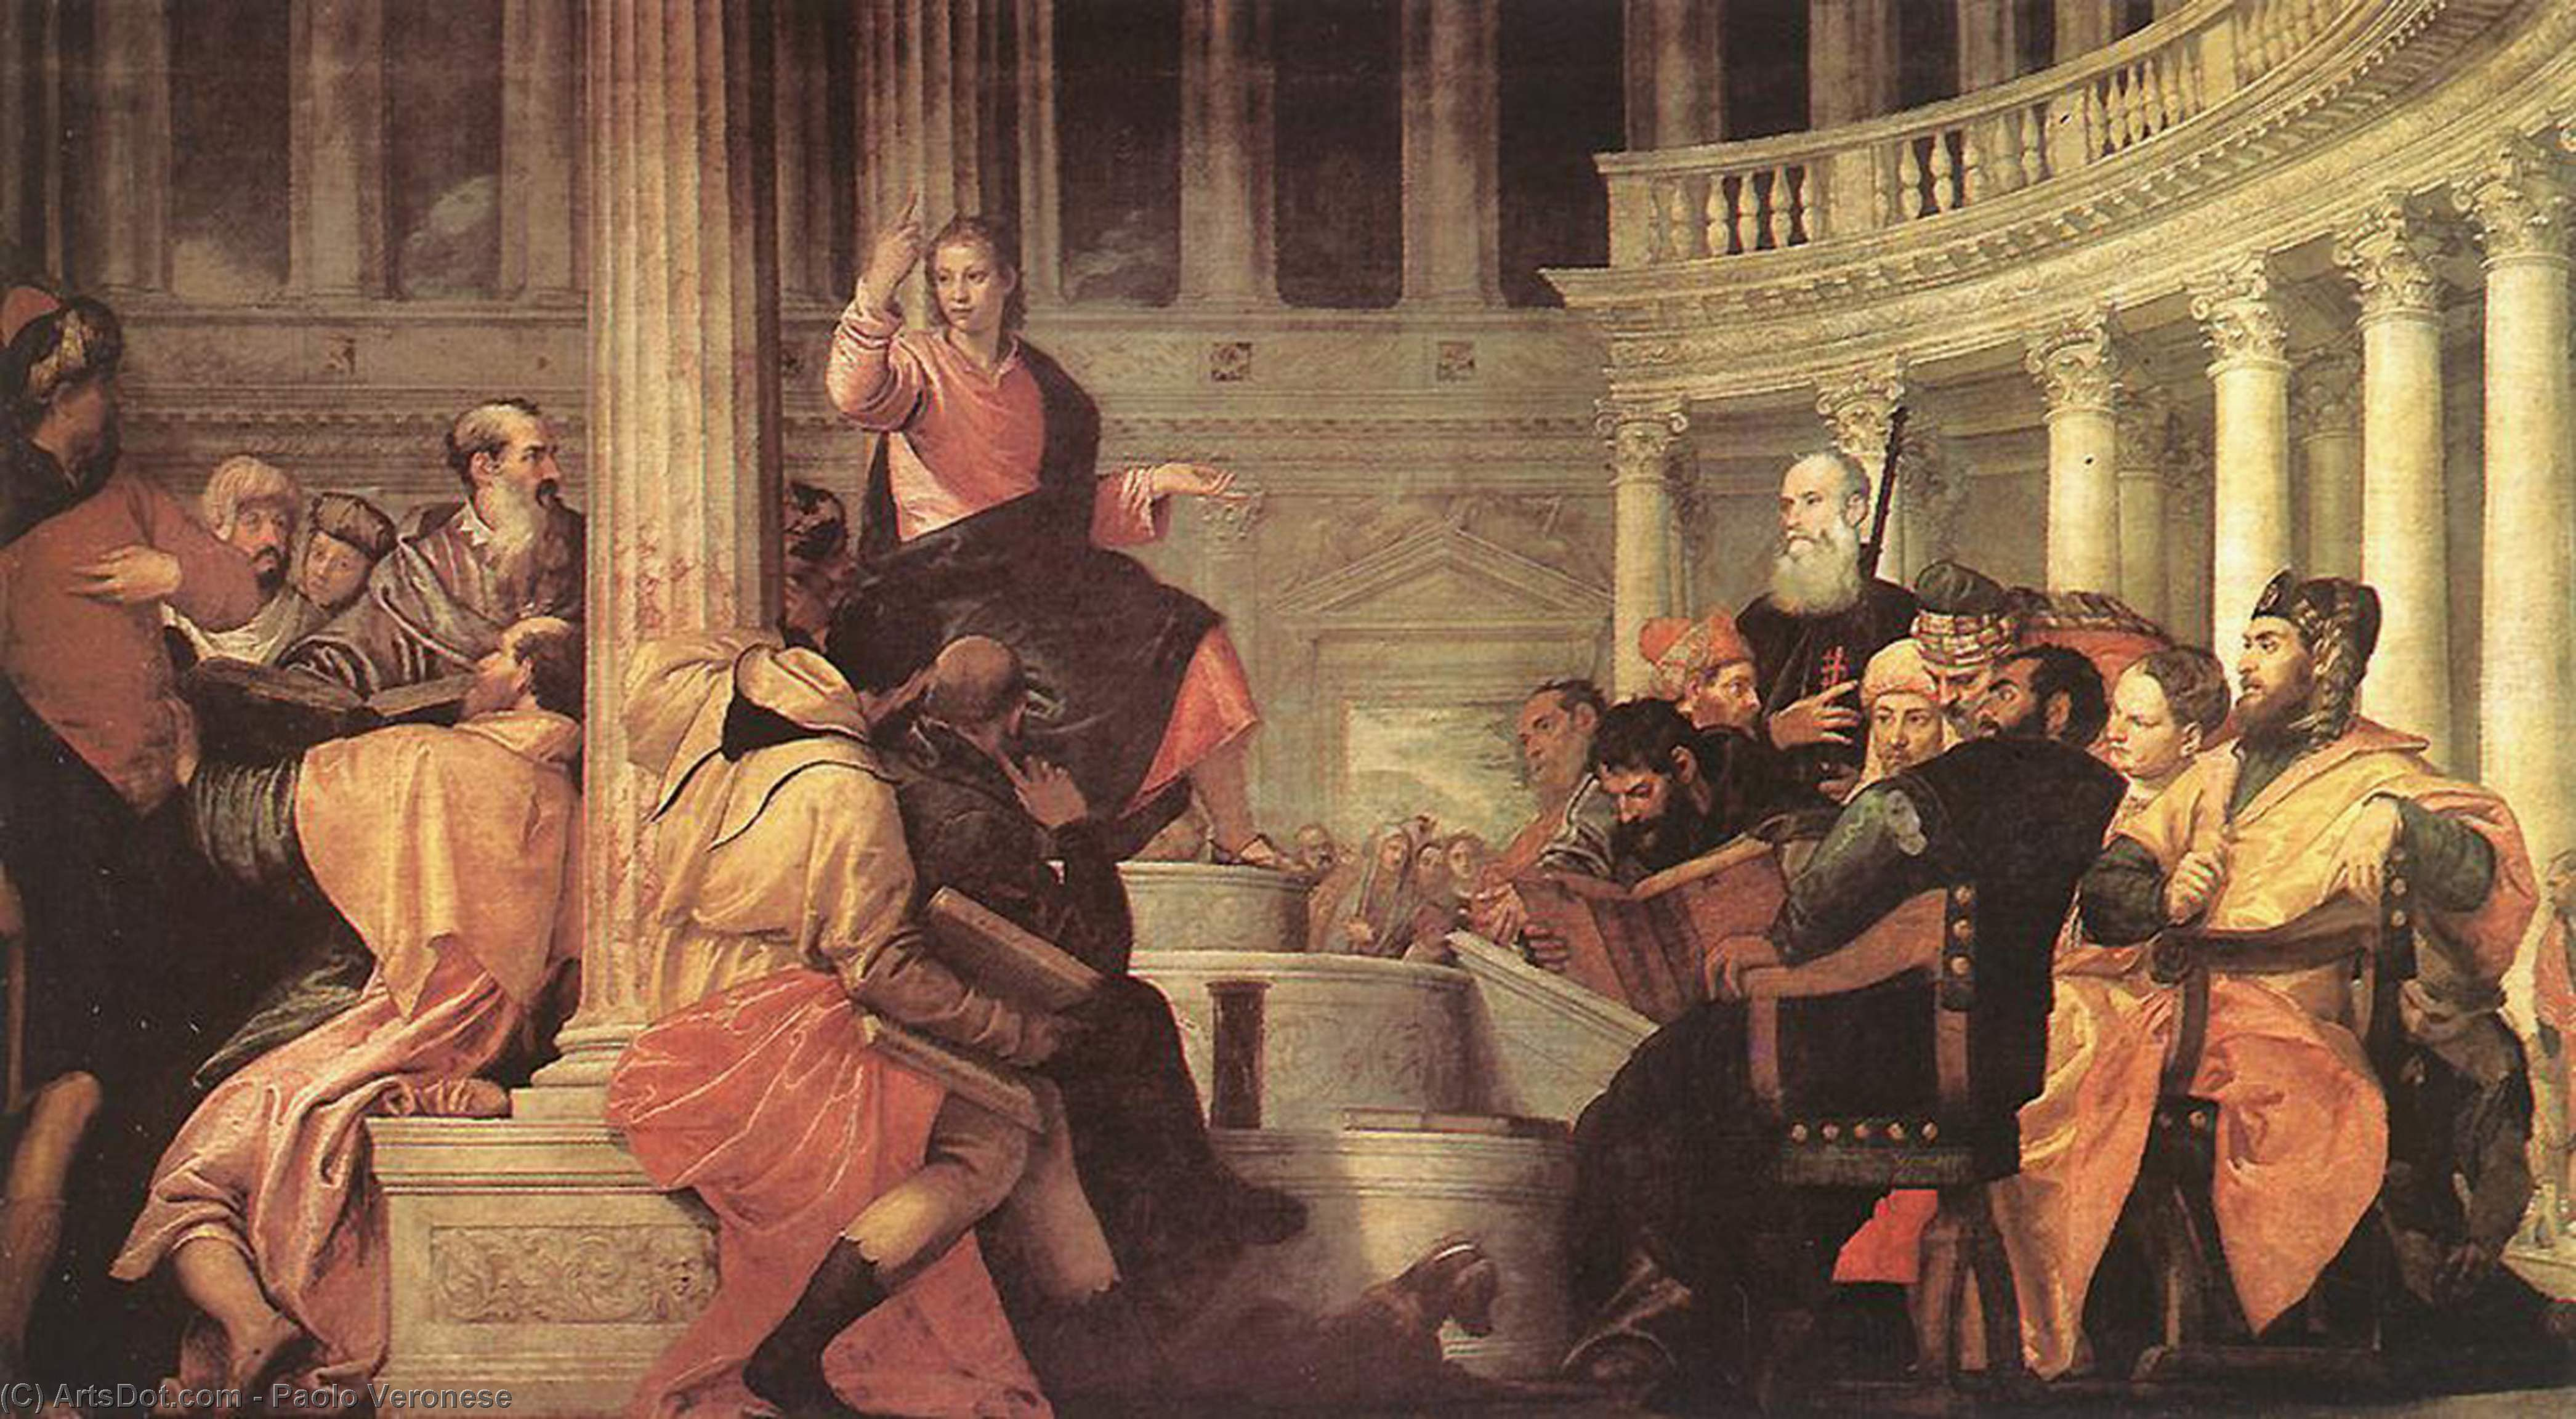 Wikioo.org - The Encyclopedia of Fine Arts - Painting, Artwork by Paolo Veronese - Jesus among the Doctors in the Temple